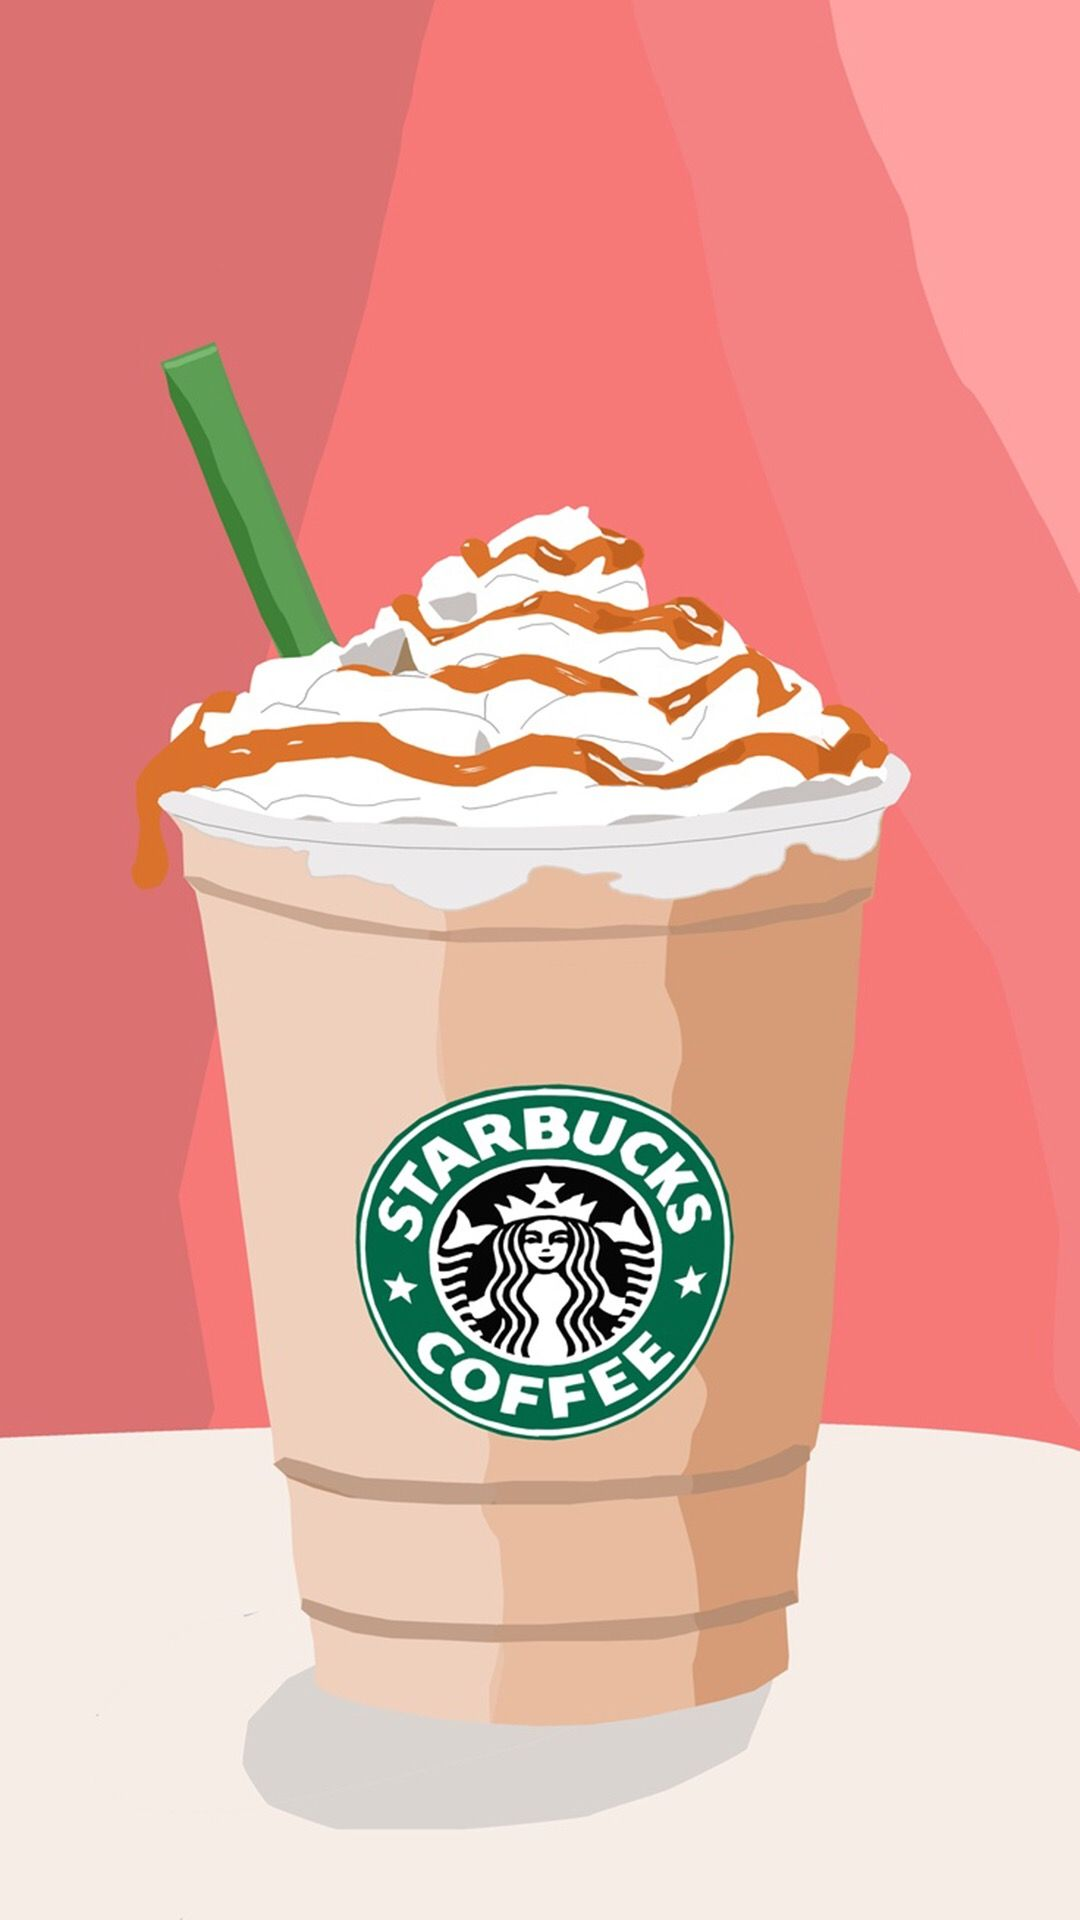 Pin by Peyton on Wallpapers Starbucks wallpaper